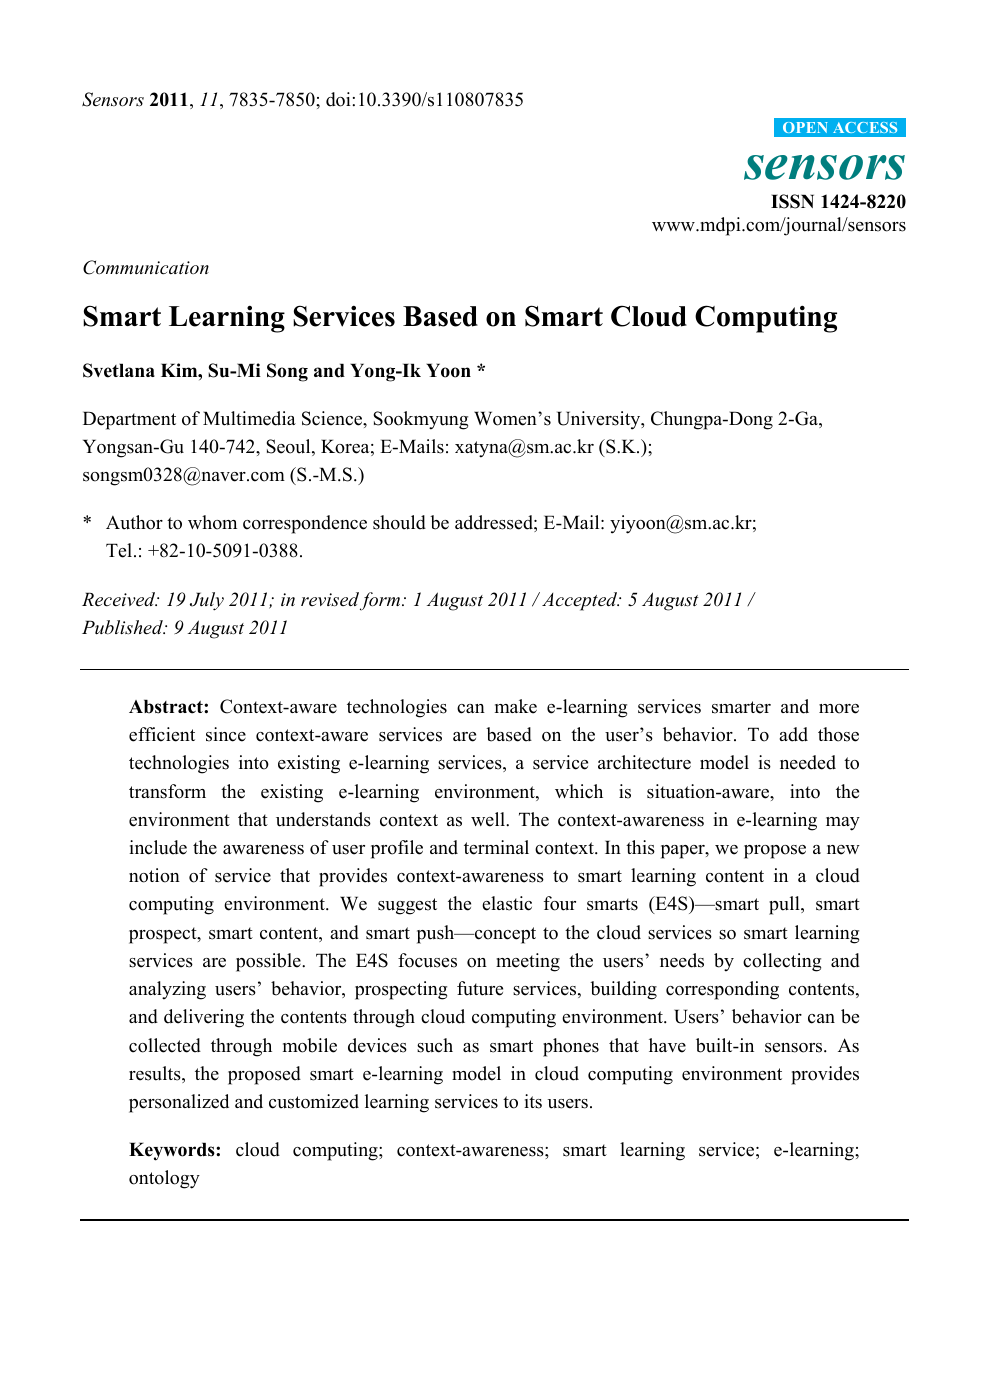 Smart Learning Services Based on Smart Cloud Computing